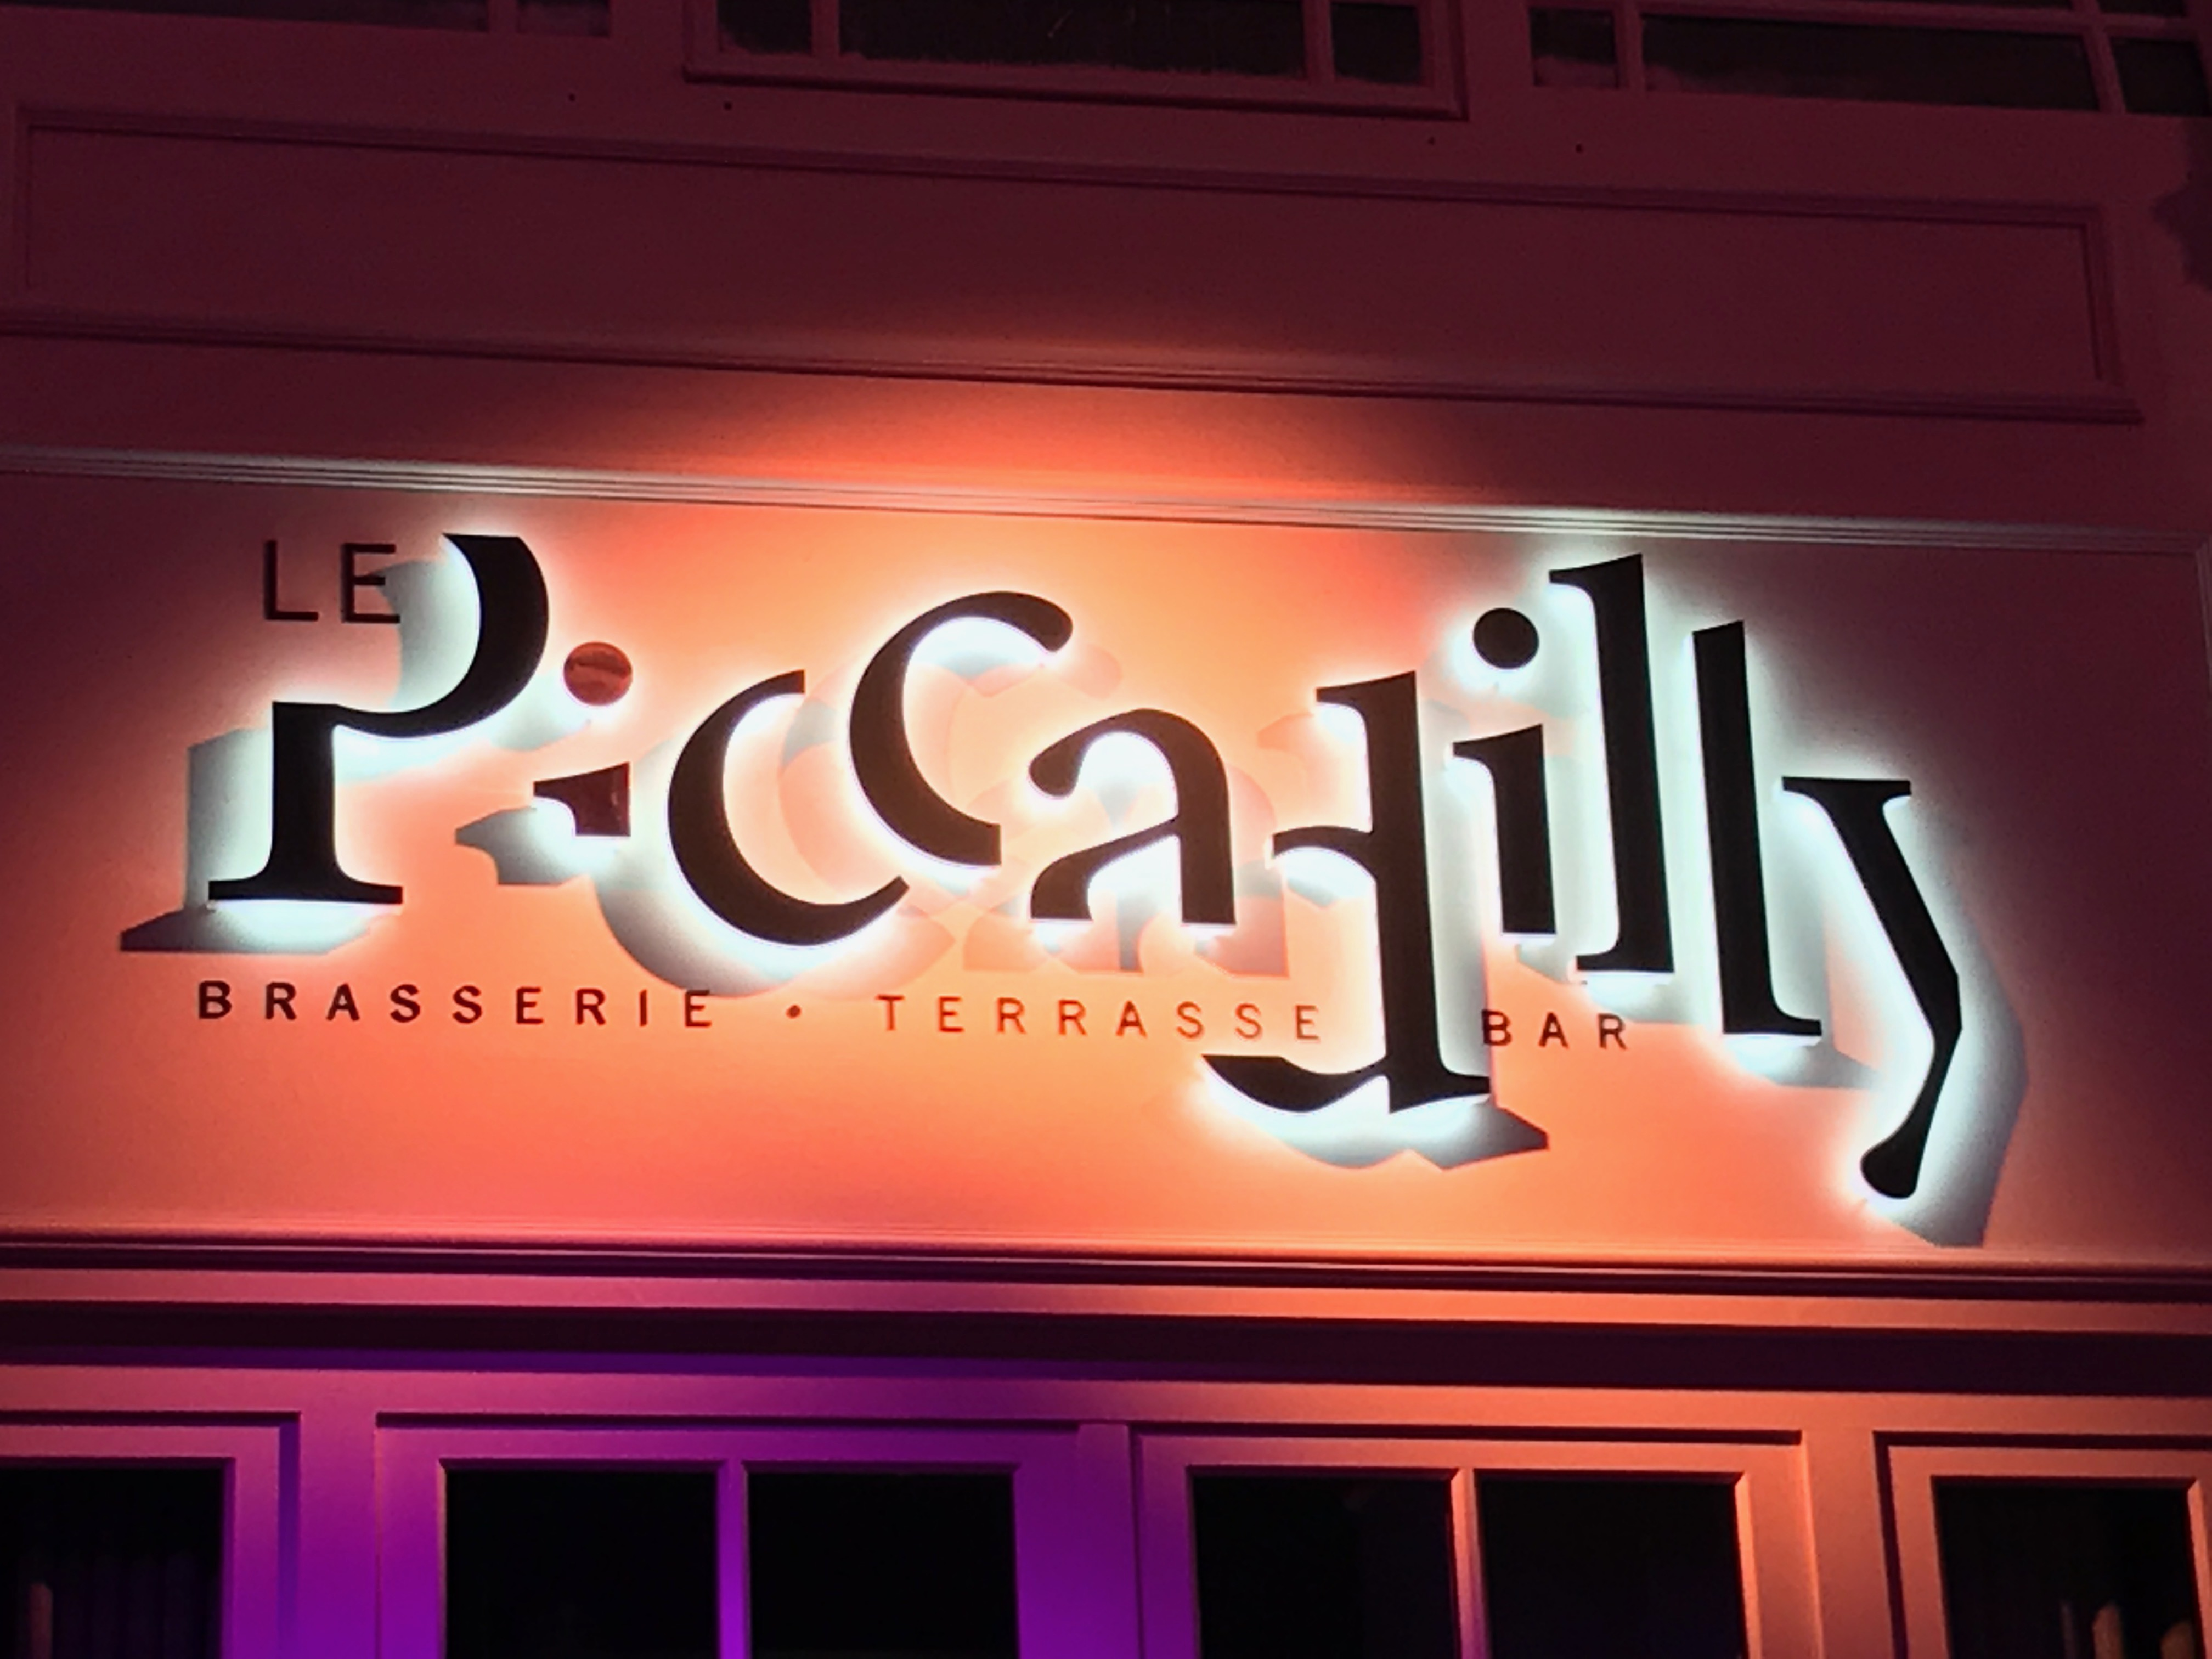 Le Piccadilly